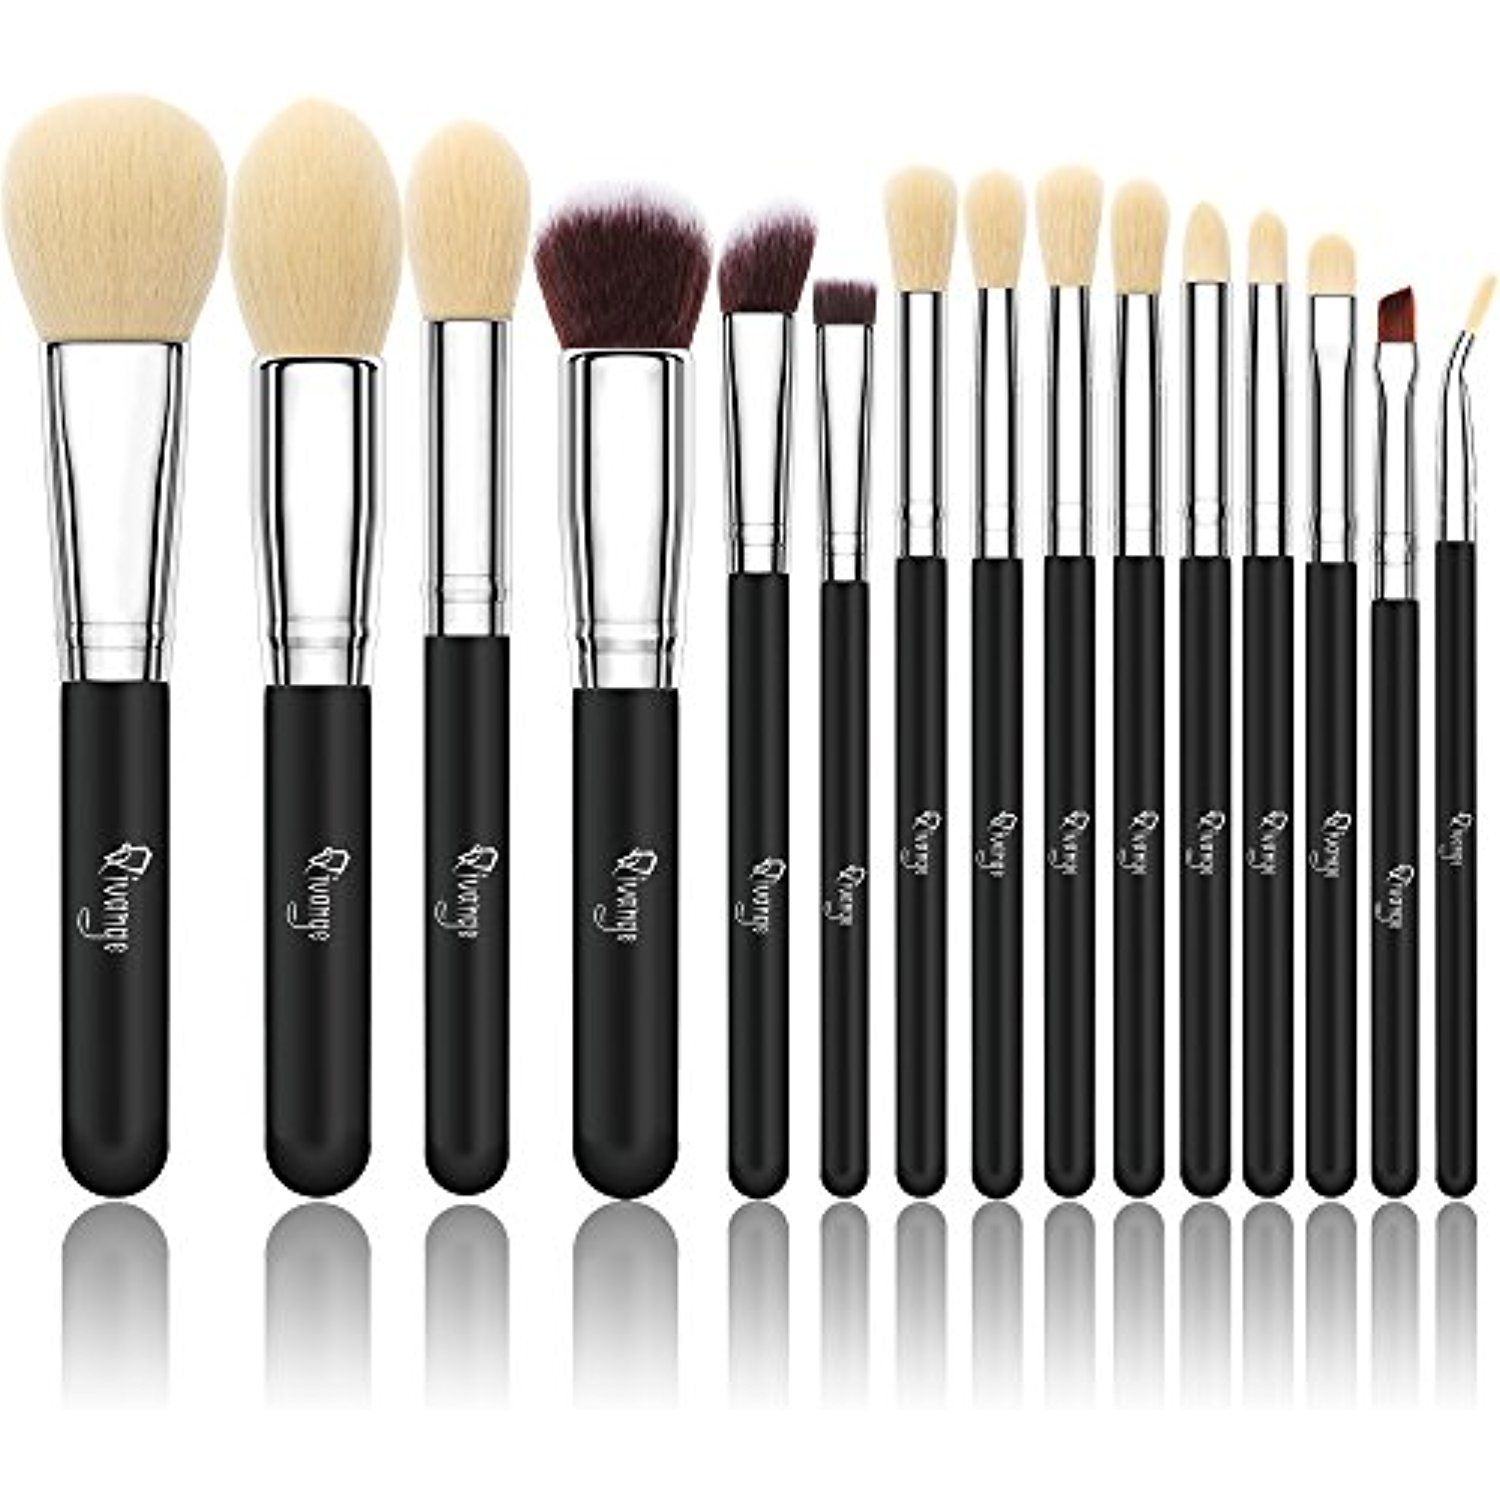 562375a7b4c7 Qivange Makeup Brushes, Synthetic Eyeshadow Bronzer Foundation ...